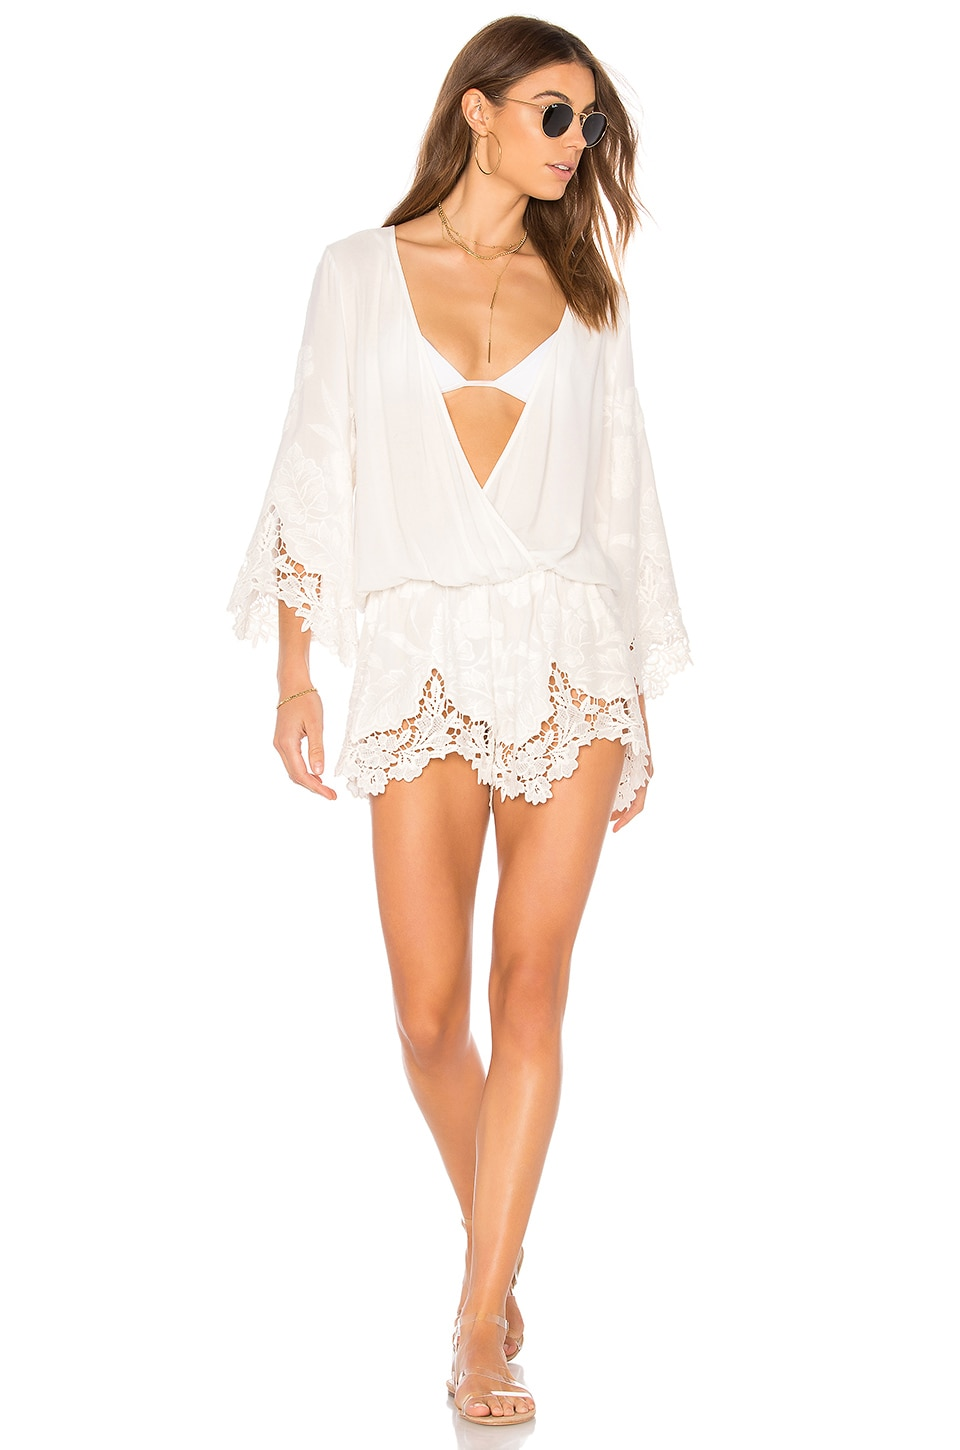 BEACH BUNNY Love Letter Romper in White